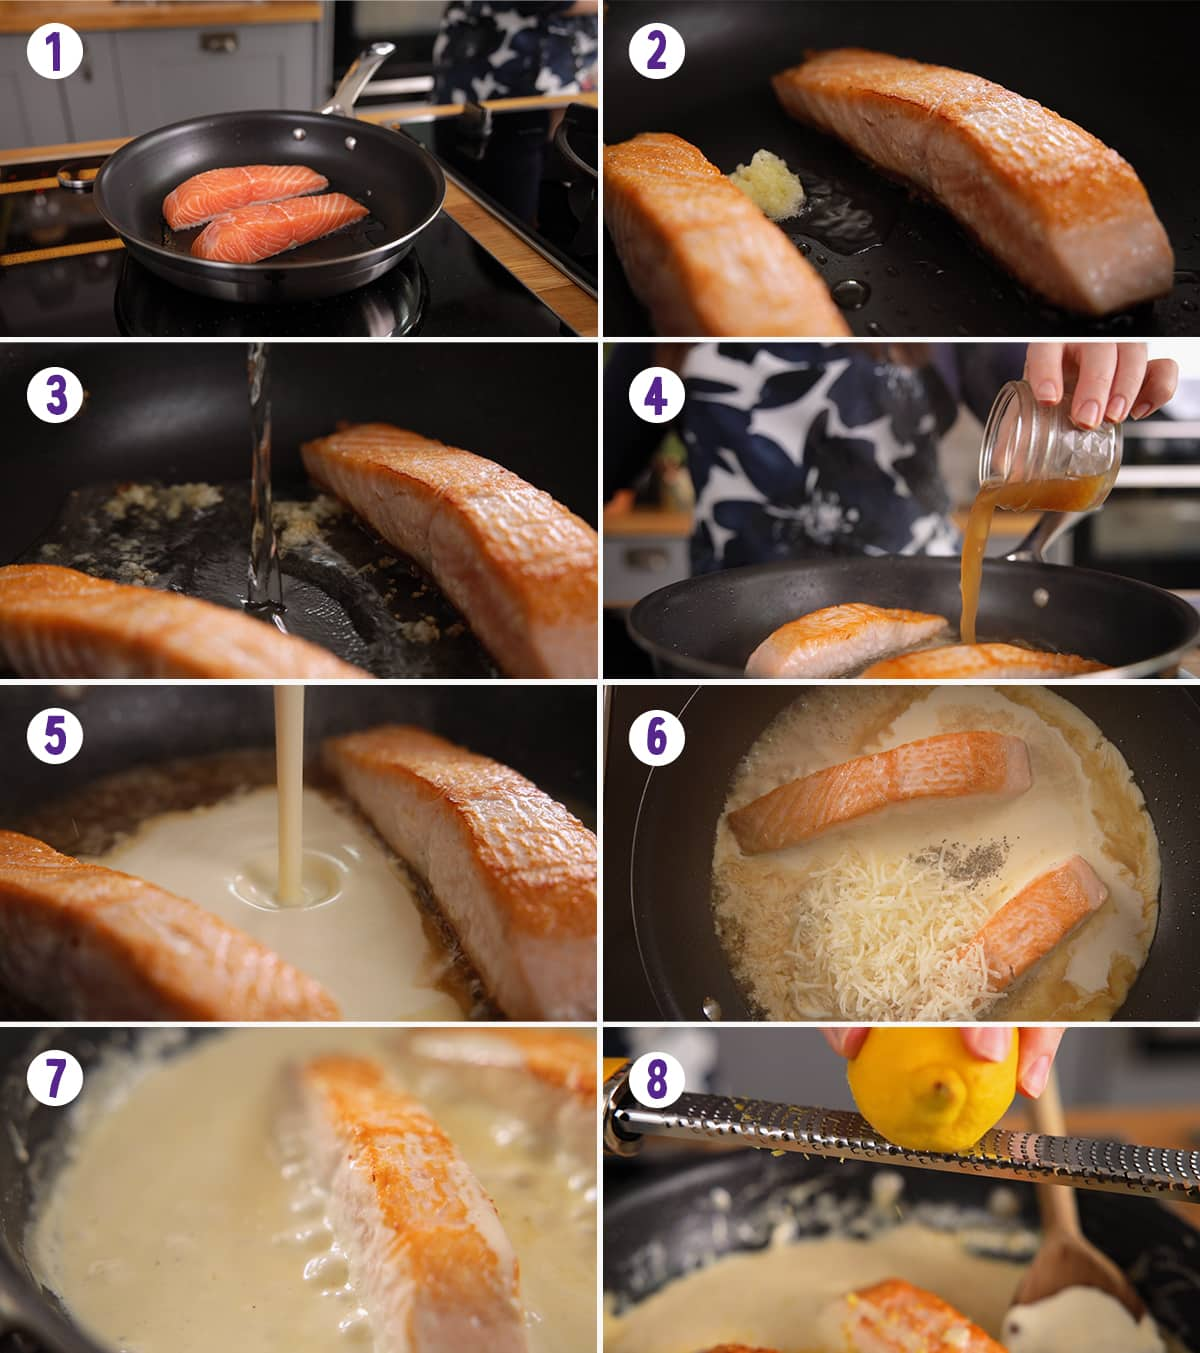 8 image collage showing how to make salmon with creamy white wine sauce